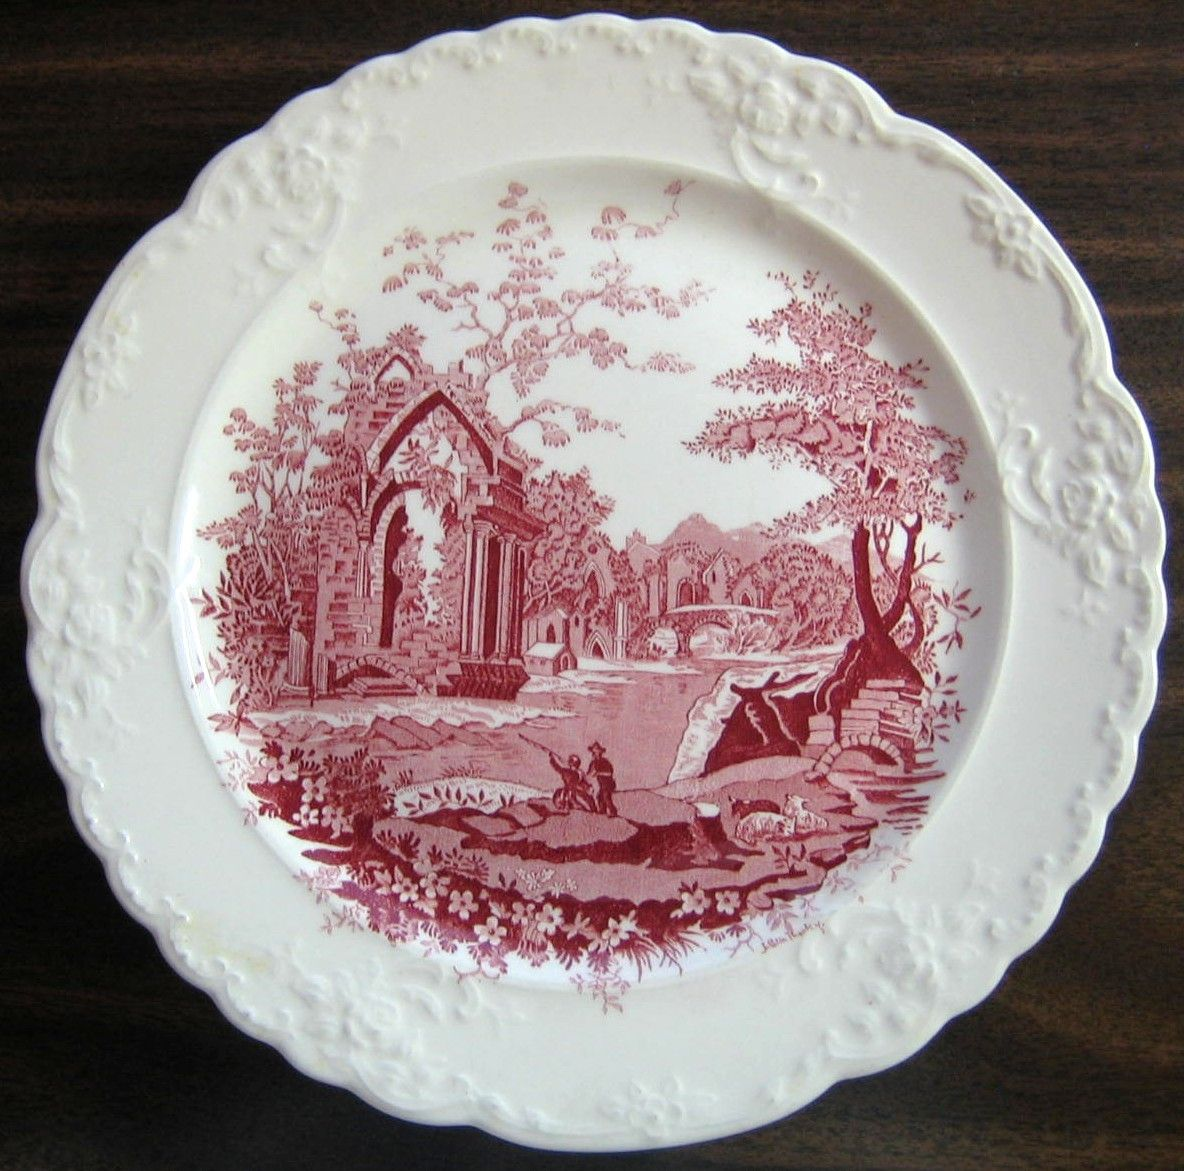 Decorative Dishes - Red Pink Toile Exotic Castle Woman Sheep Raised Roses Edge USA Plate Vintage, $29.99 (http://www.decorativedishes.net/red-pink-toile-exotic-castle-woman-sheep-raised-roses-edge-usa-plate-vintage/)